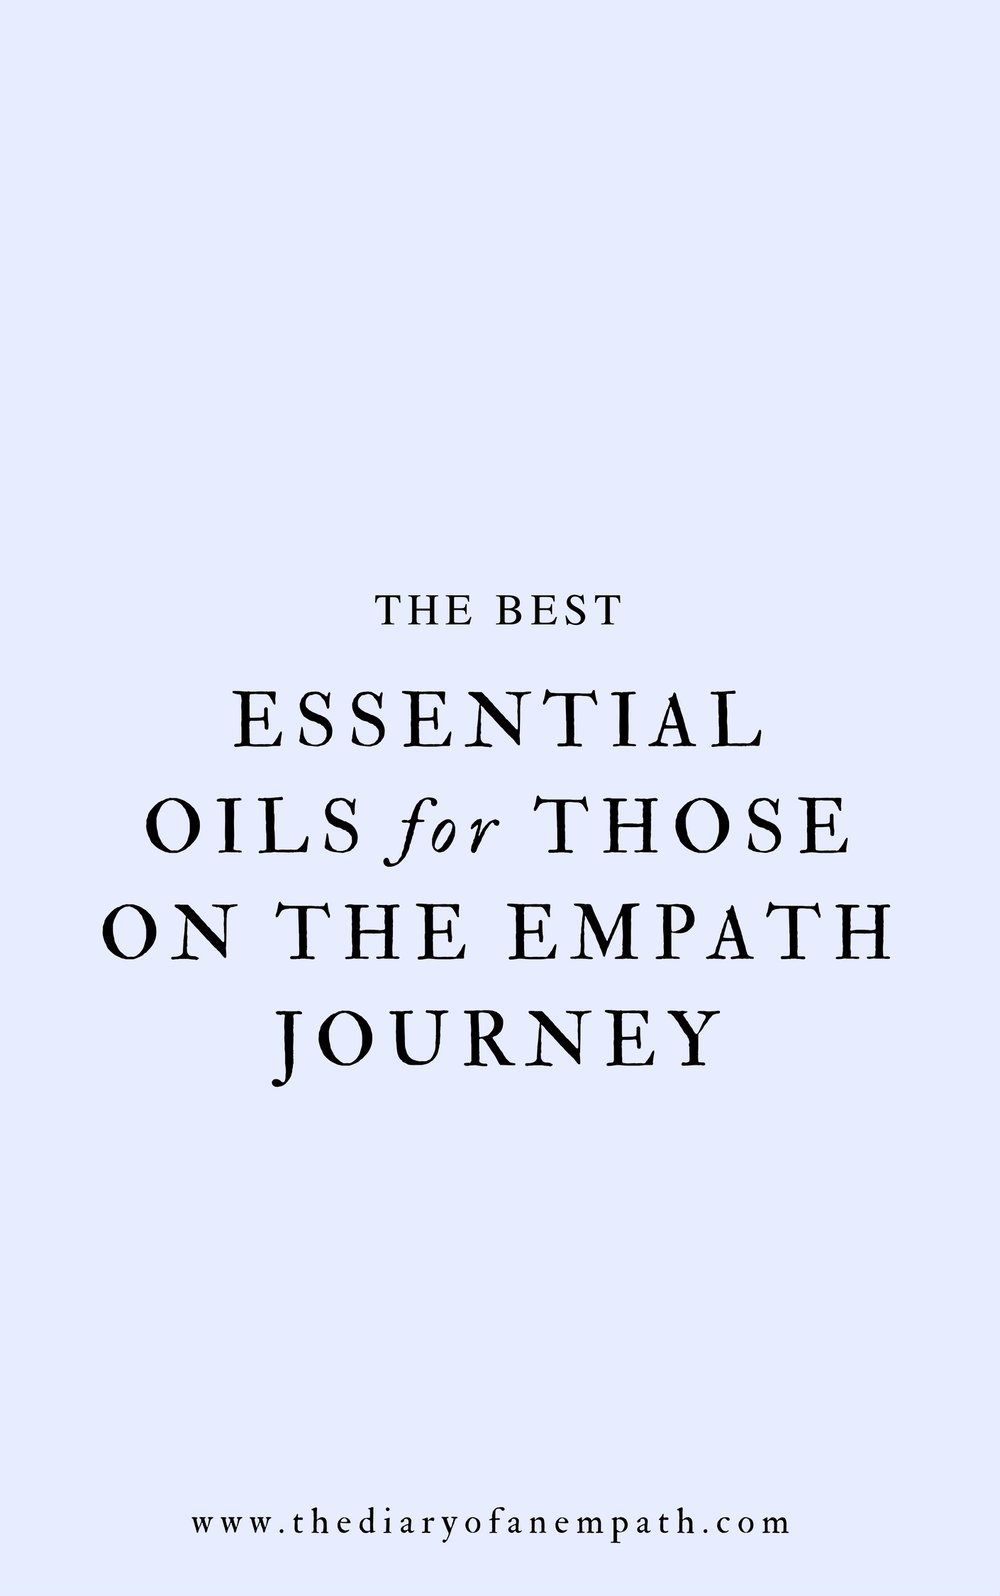 essential oils for those on empath journey, thediaryofanempath.com